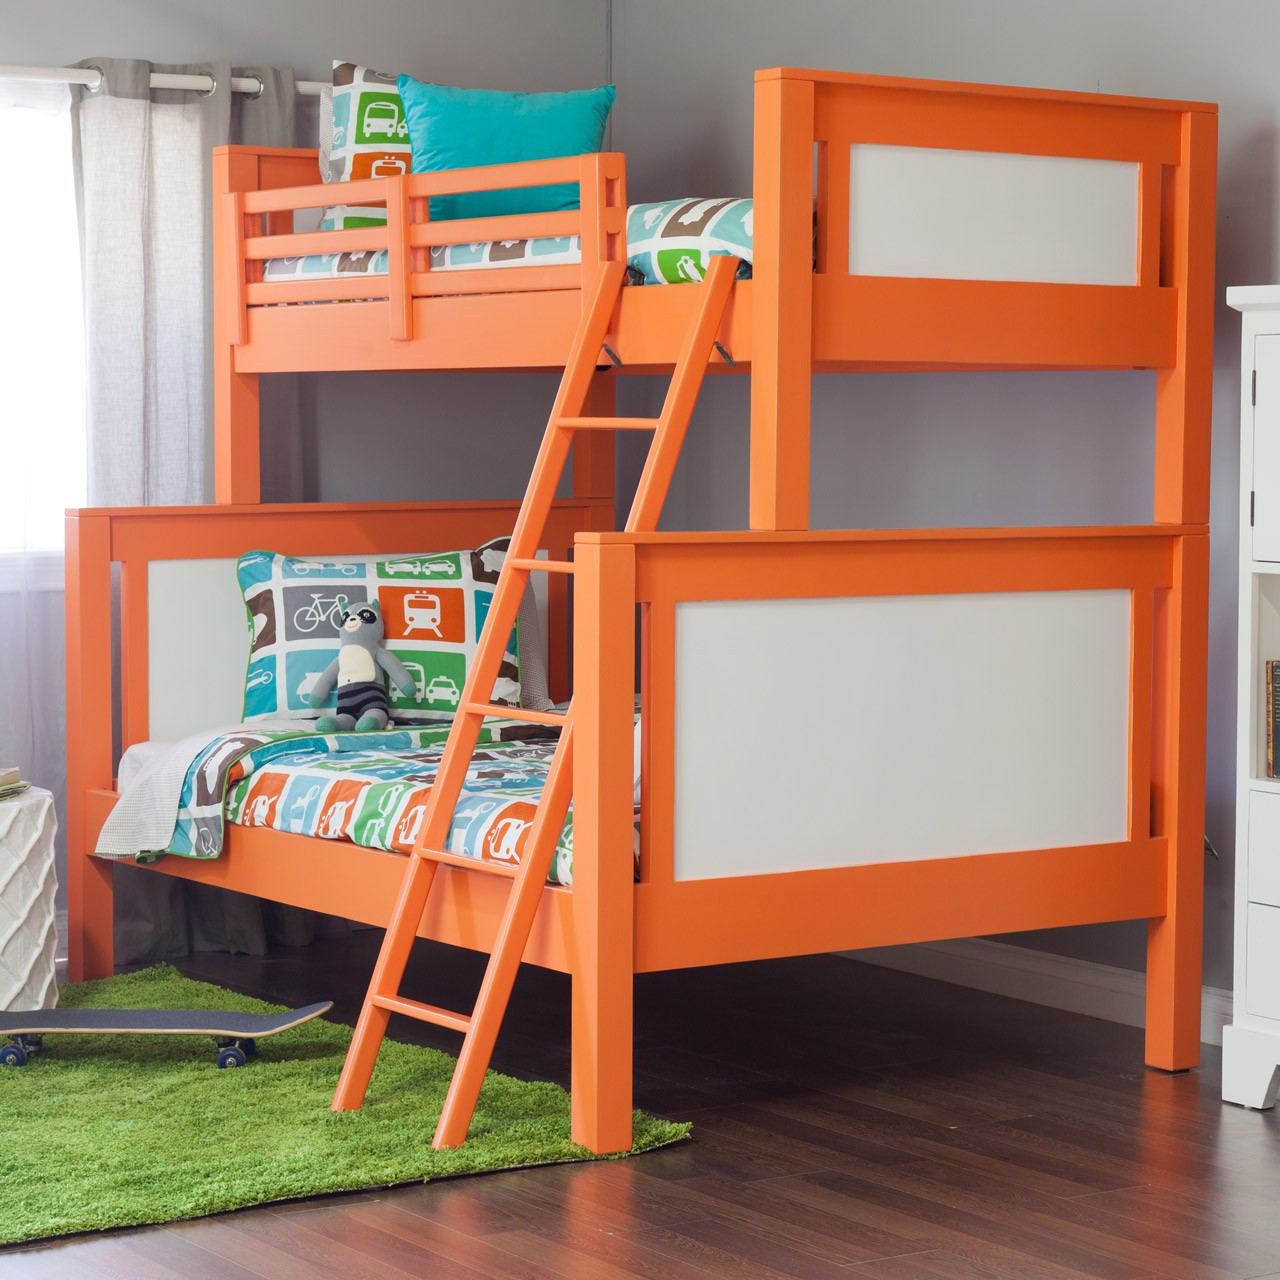 Orange Toddler Bunk Beds with Ladder and Transportation Themed Bedding for Cozy Boys Bedroom